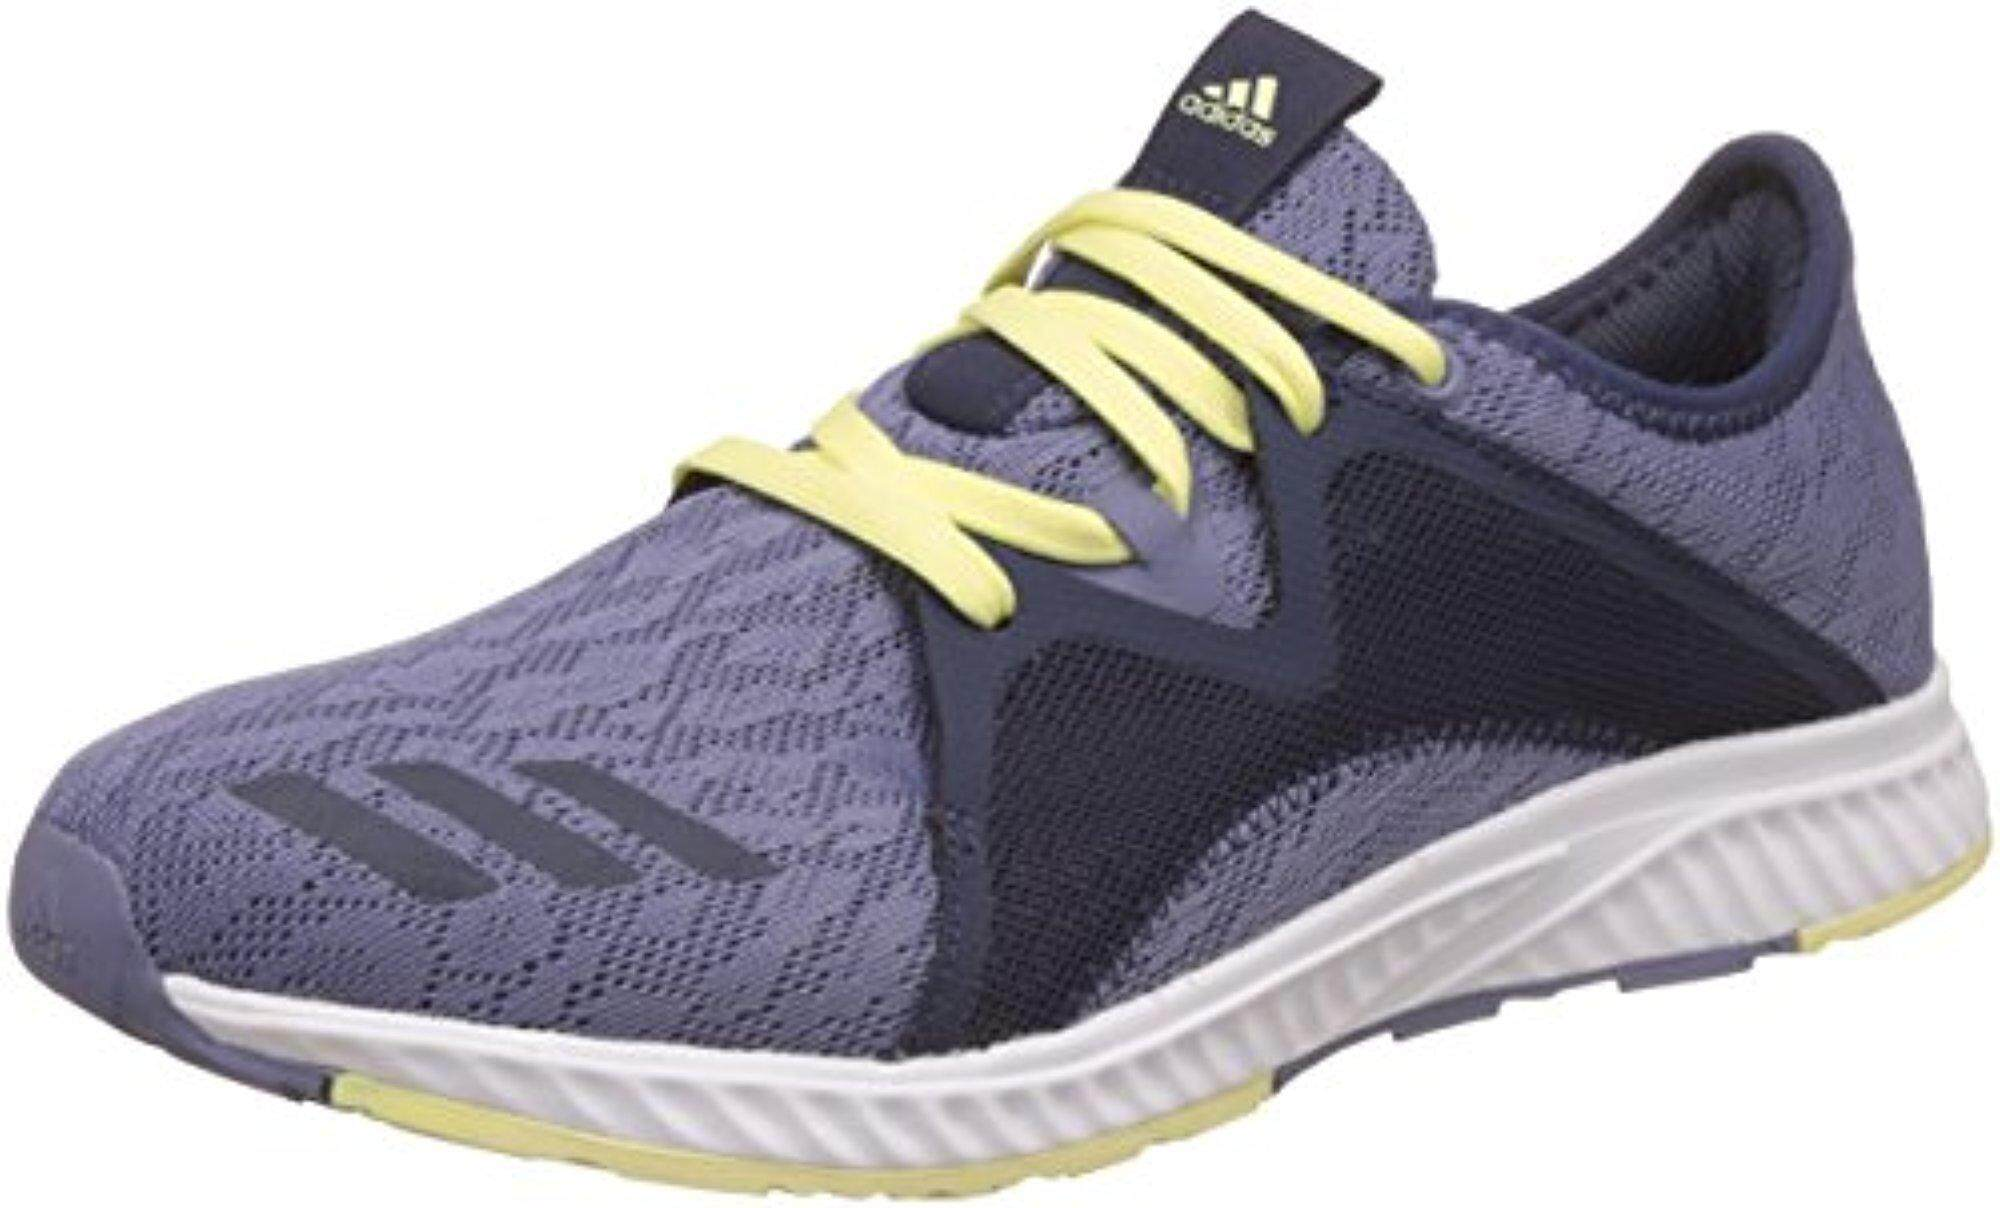 1b5e86789 Adidas Women s Shoes price in Malaysia - Best Adidas Women s Shoes ...